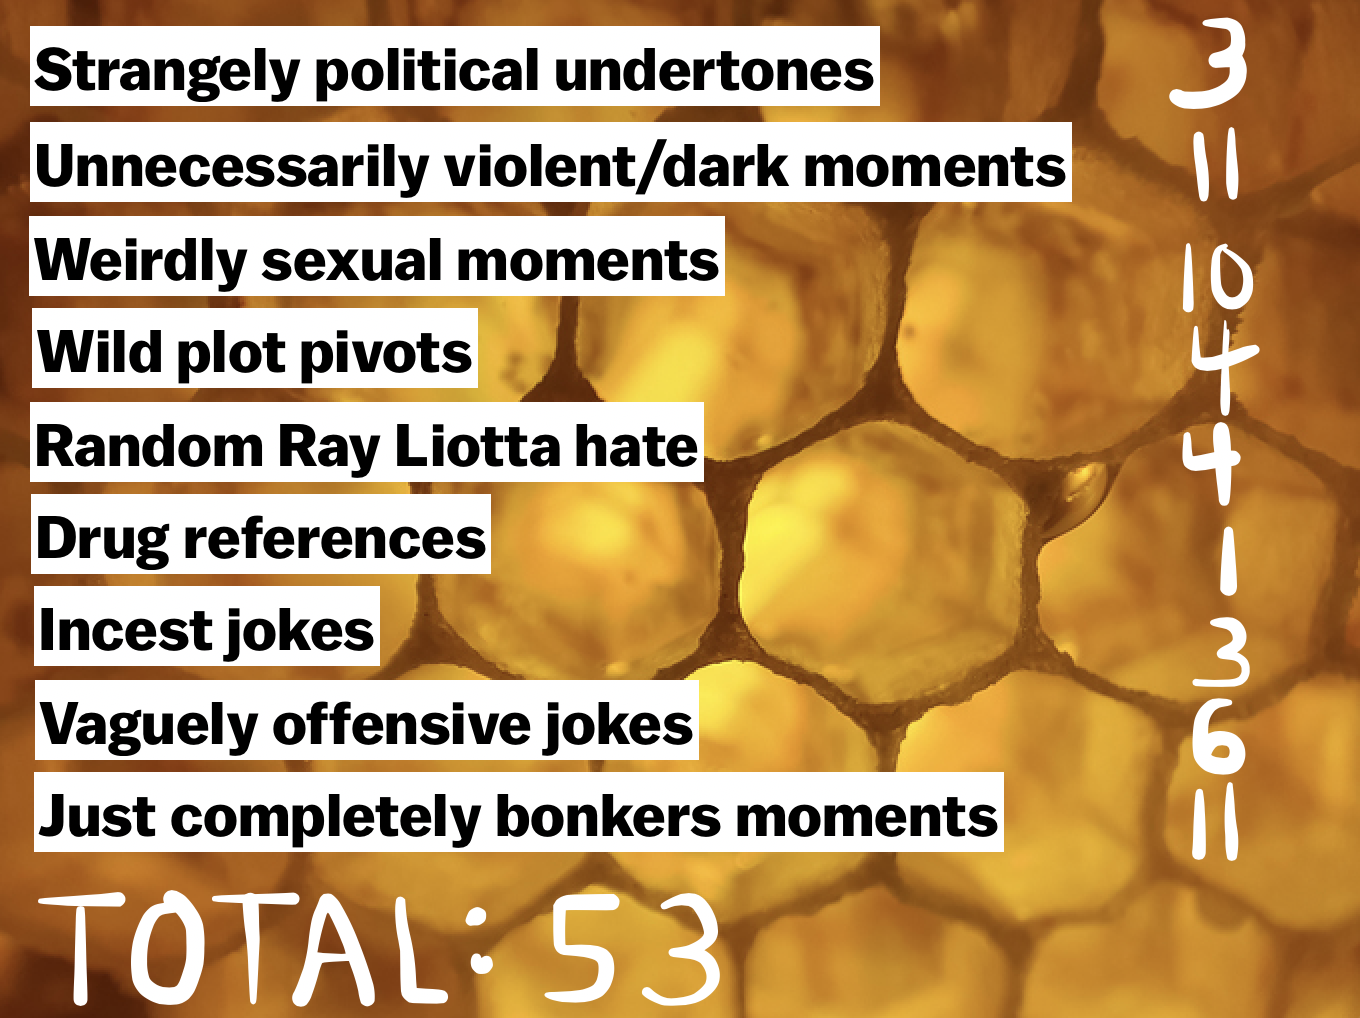 final tally of all the bonkers moments